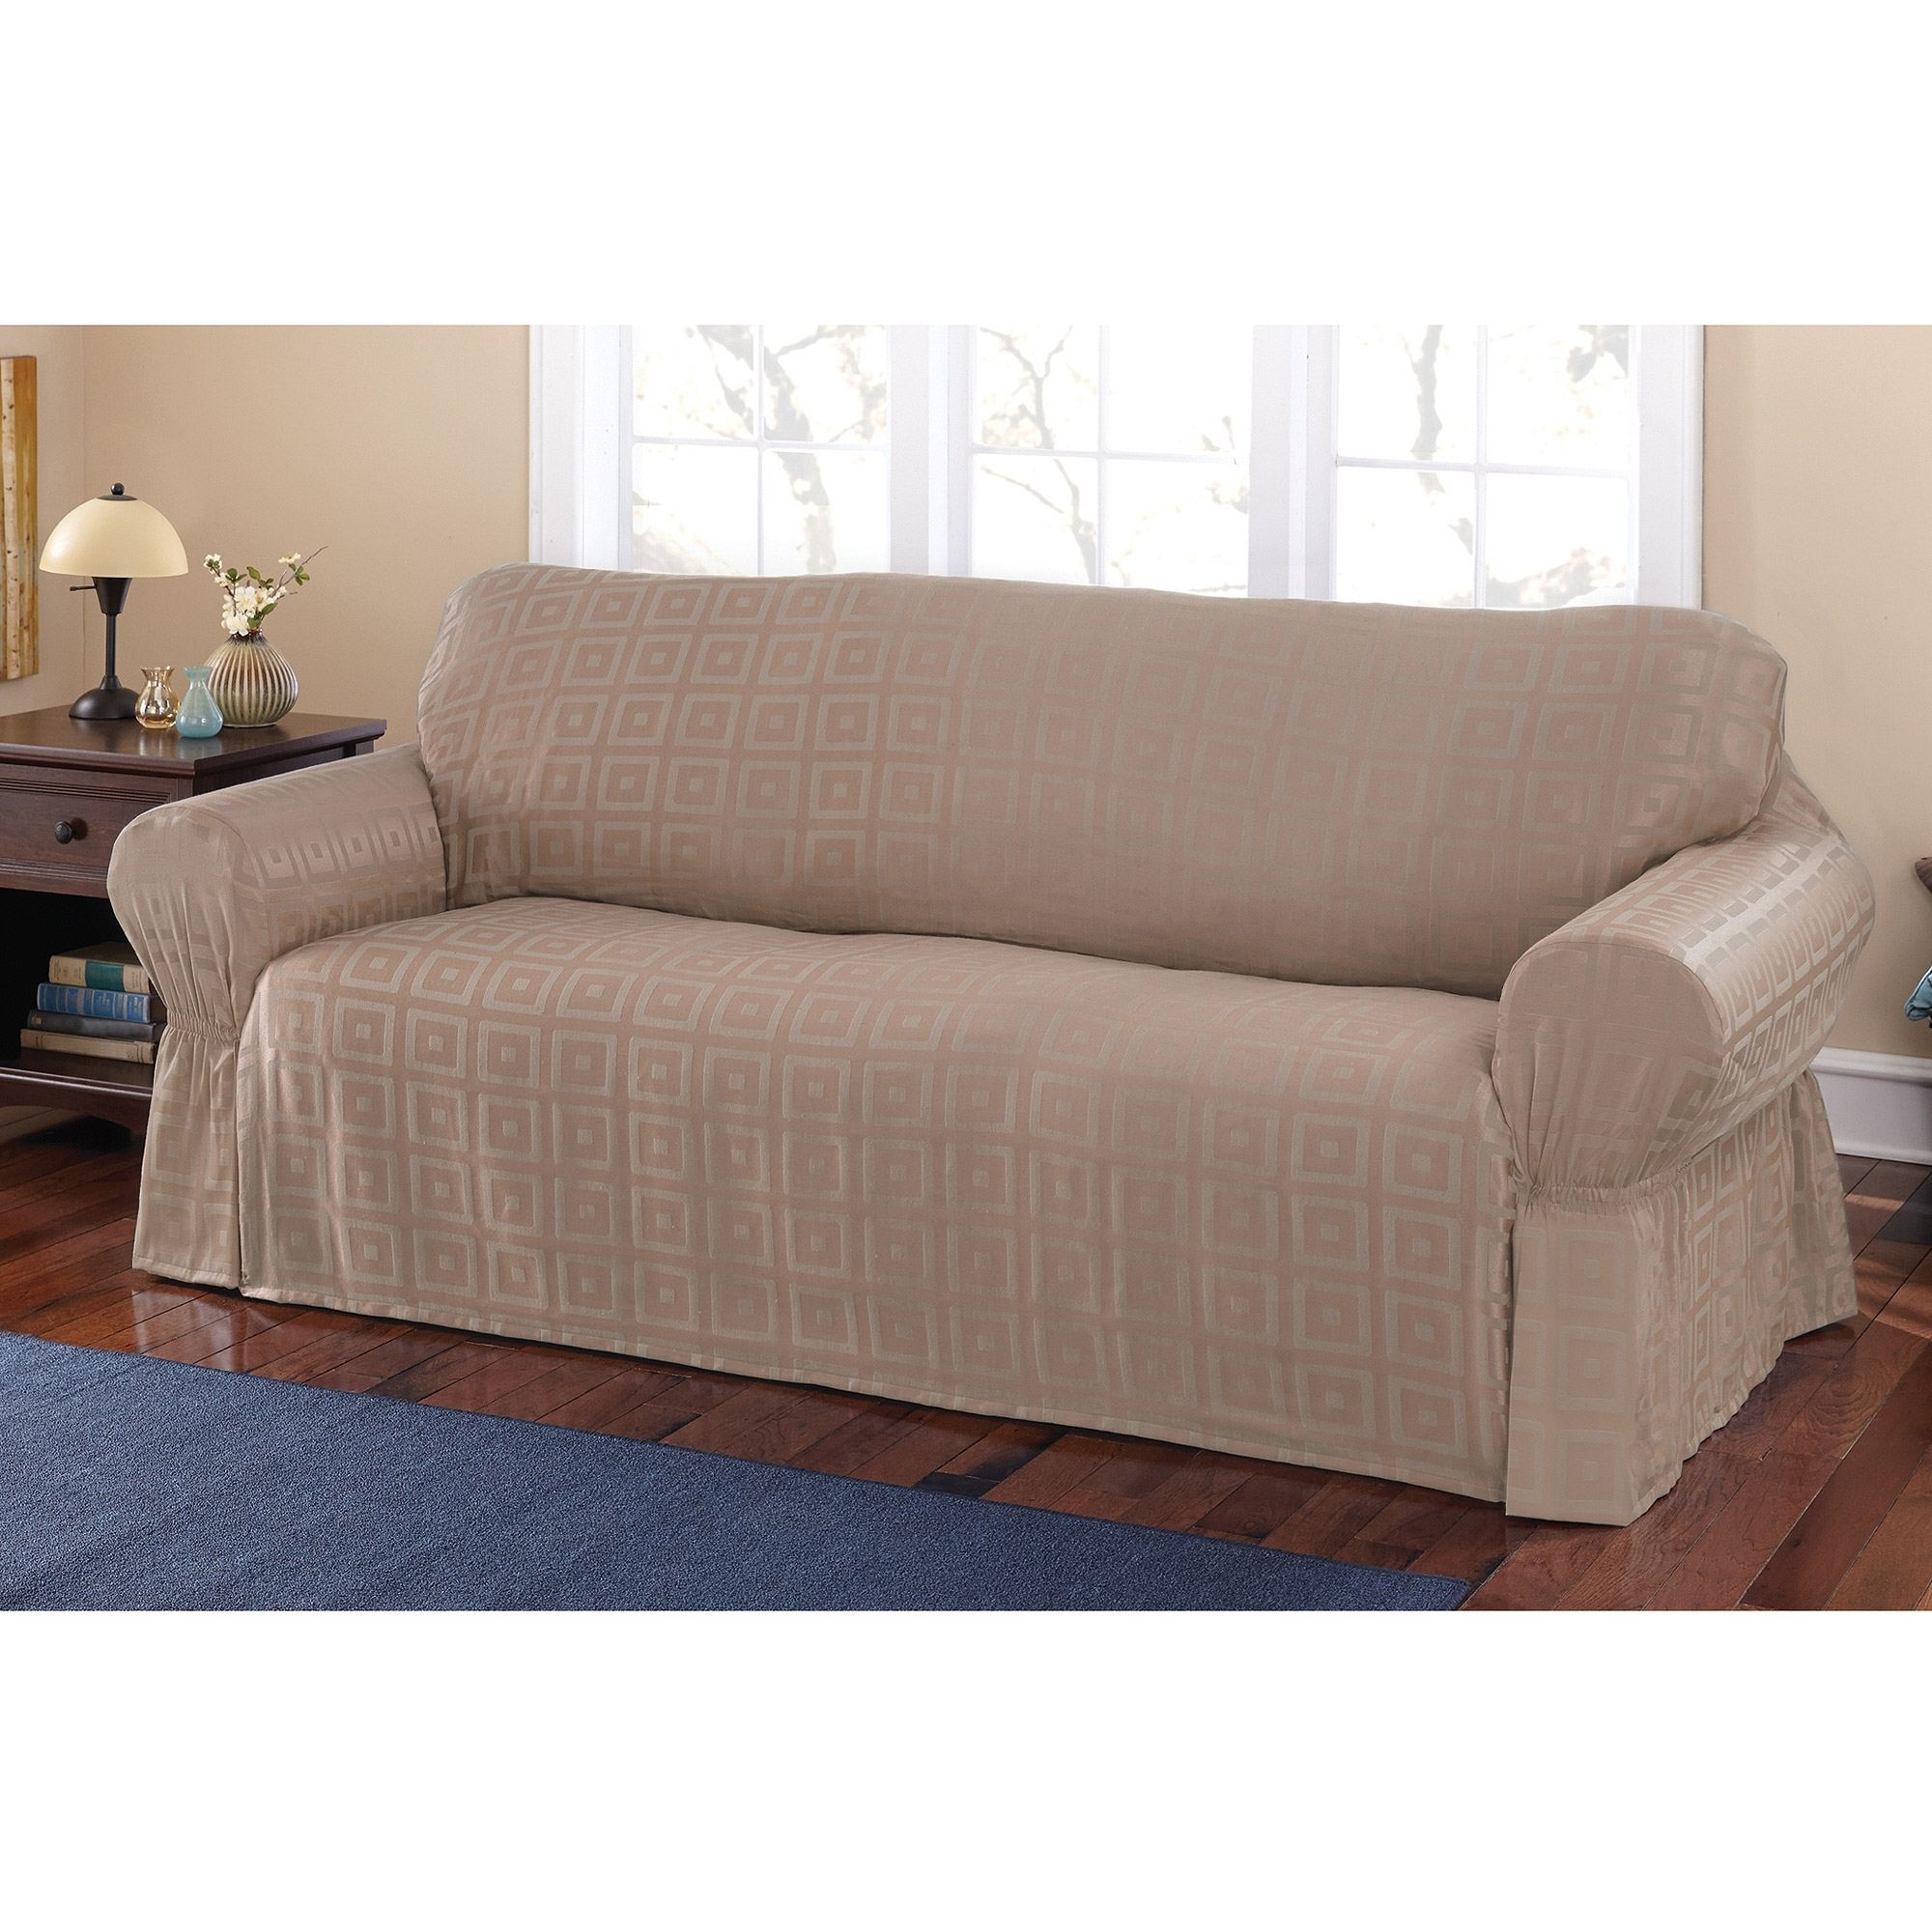 Popular Slipcovers Sofas For Mainstays Sherwood Slipcover Sofa – Walmart (View 10 of 20)